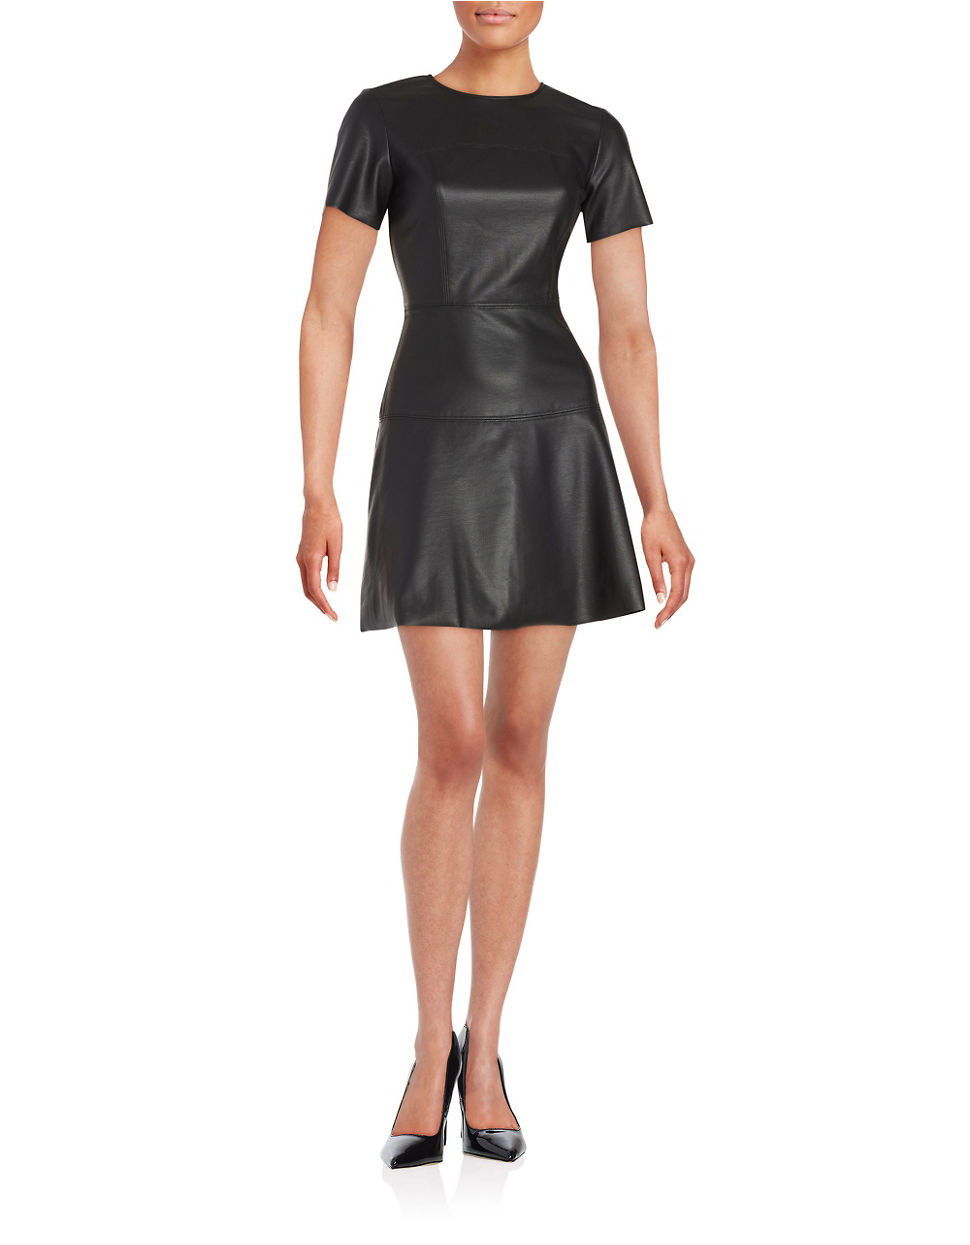 Lyst - Lord & Taylor Faux Leather Fit-and Flare Dress in Black